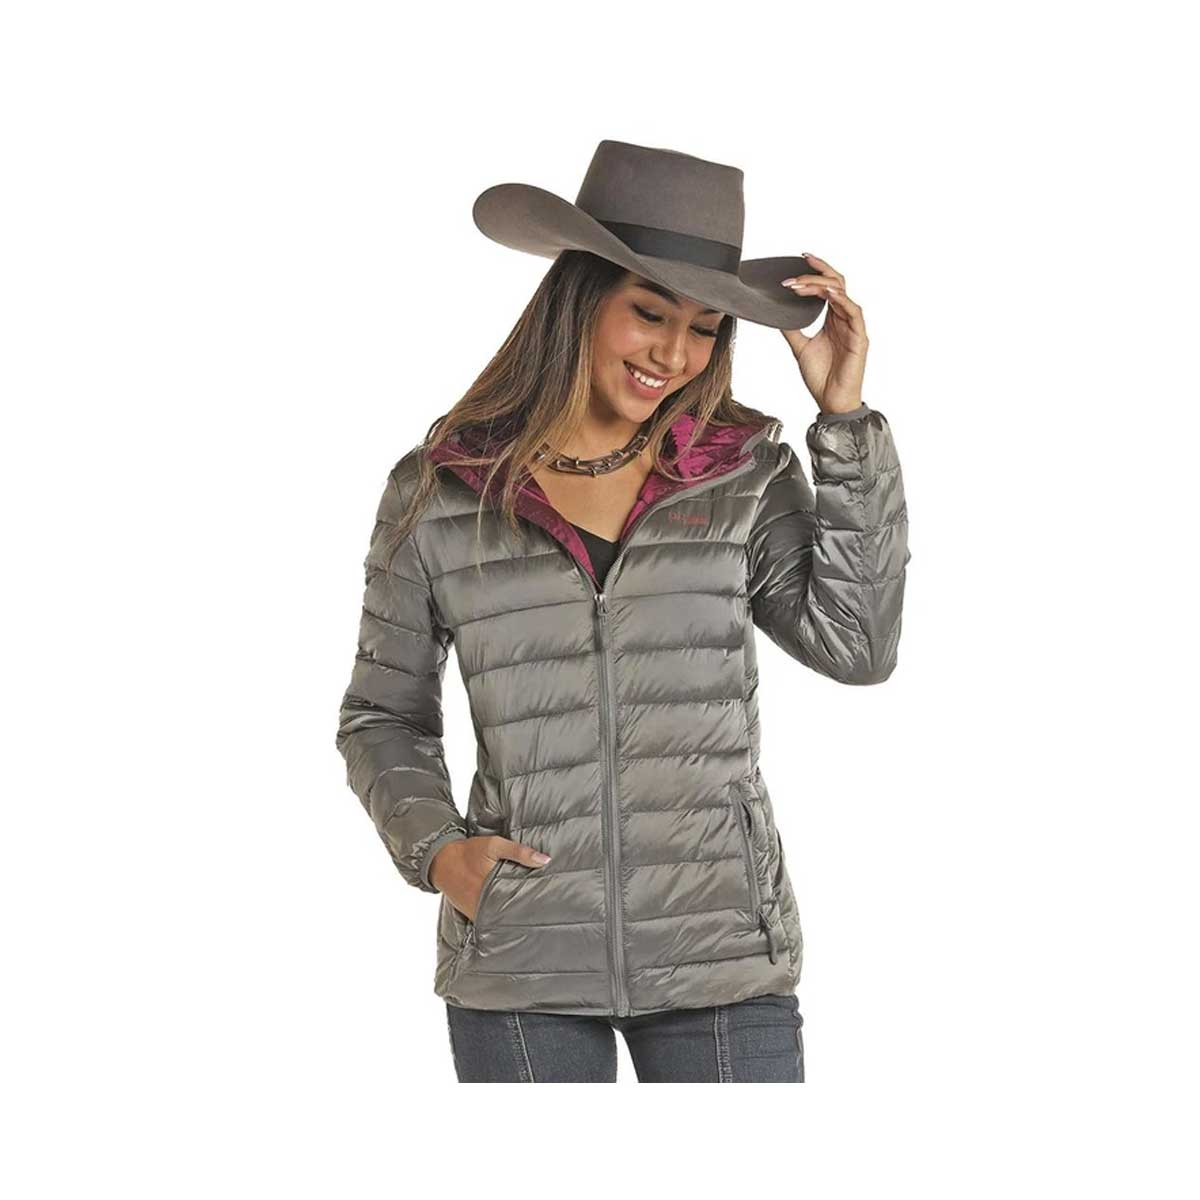 Powder River Outfitters Women's Light Weight Metallic Puffer Jacket - Charcoal